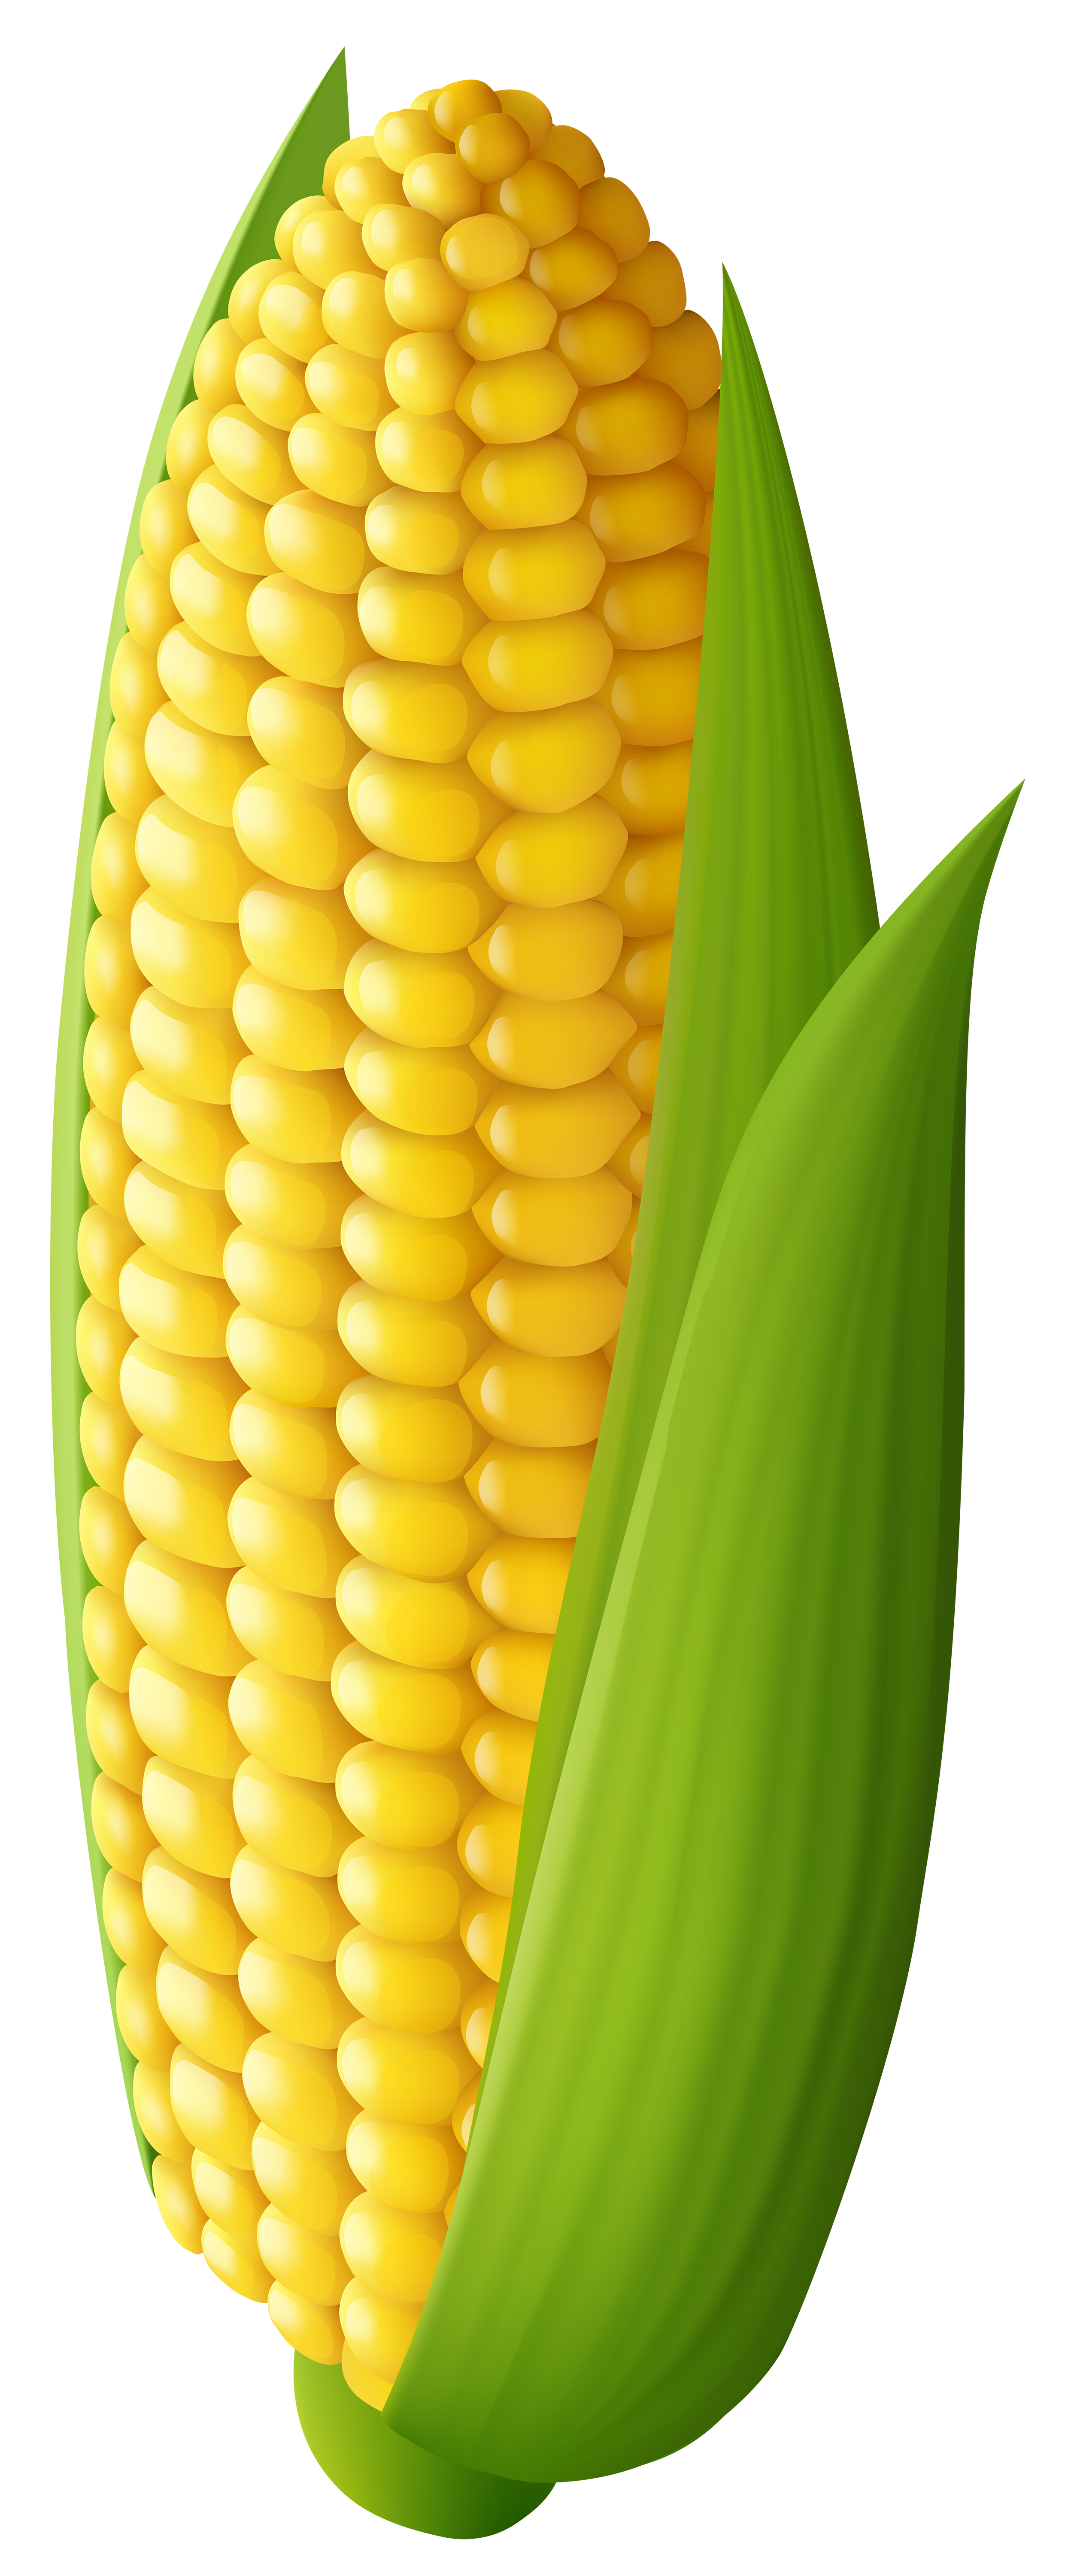 Corn Transparent Png Clip Art Image Gallery Yopriceville High Quality Images And Transparent Png Free Clipart Clip Art Art Images Fruit Art